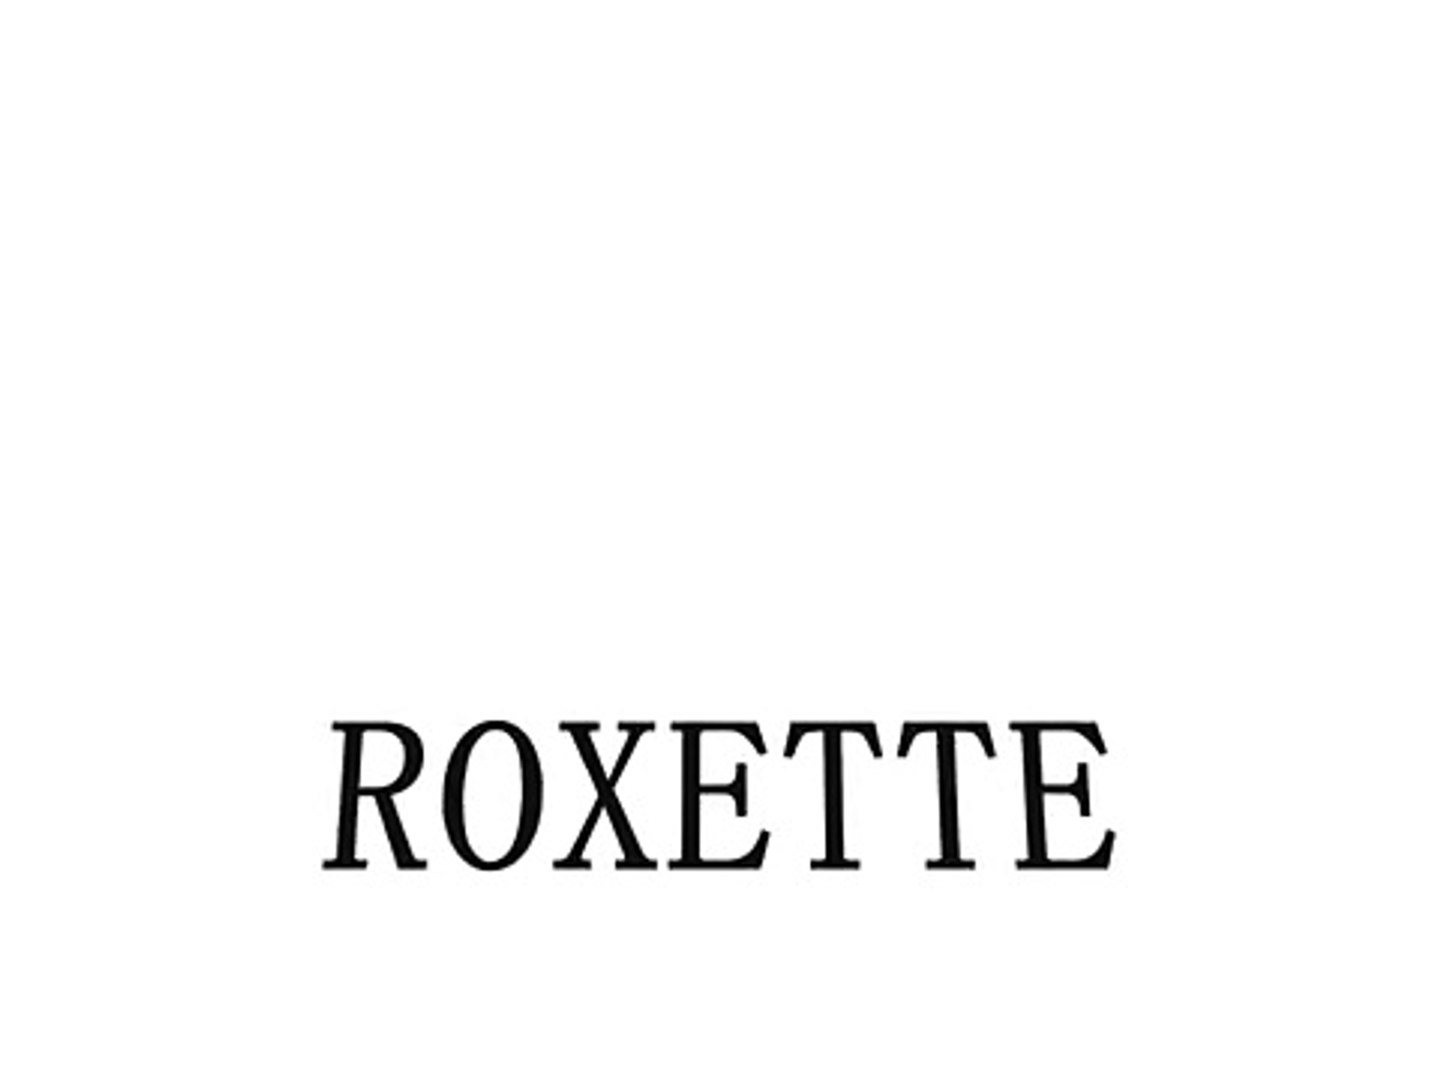 ROXETTE - Goodbye To You